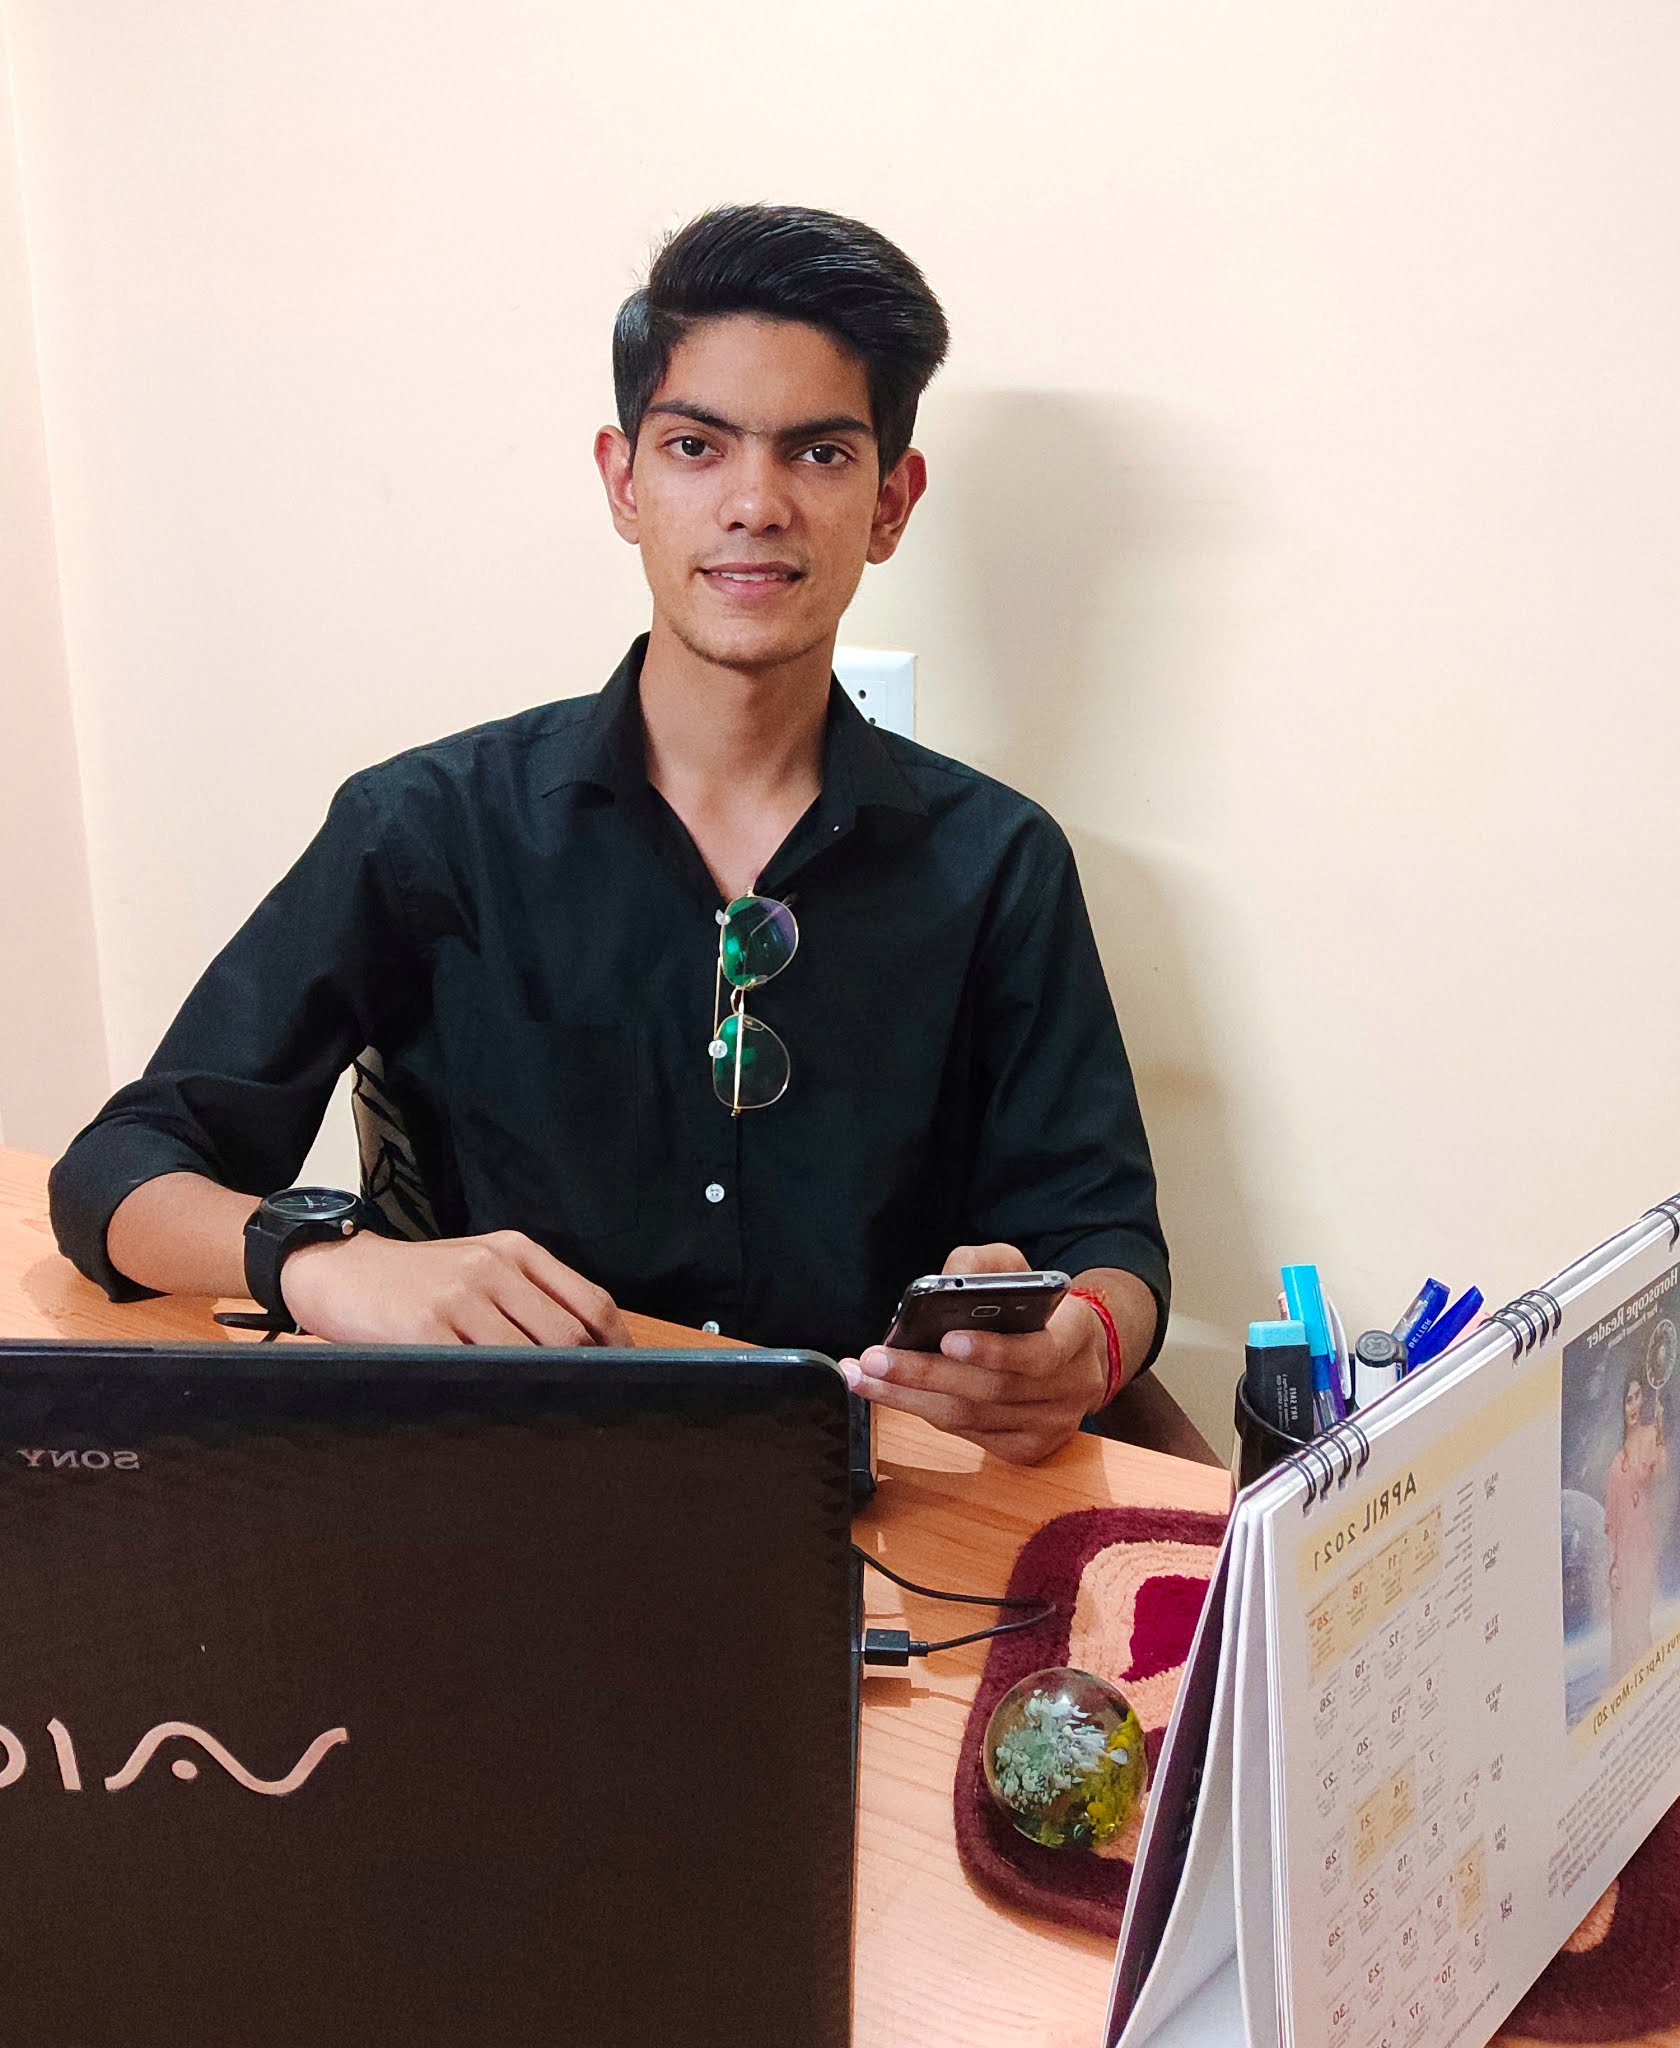 Blogger-Digital-Magnate-and-Artist-Ronit-Raj-is-Inspiring-the-Youth-to-become-self-reliant-shared-easy-earning-sources